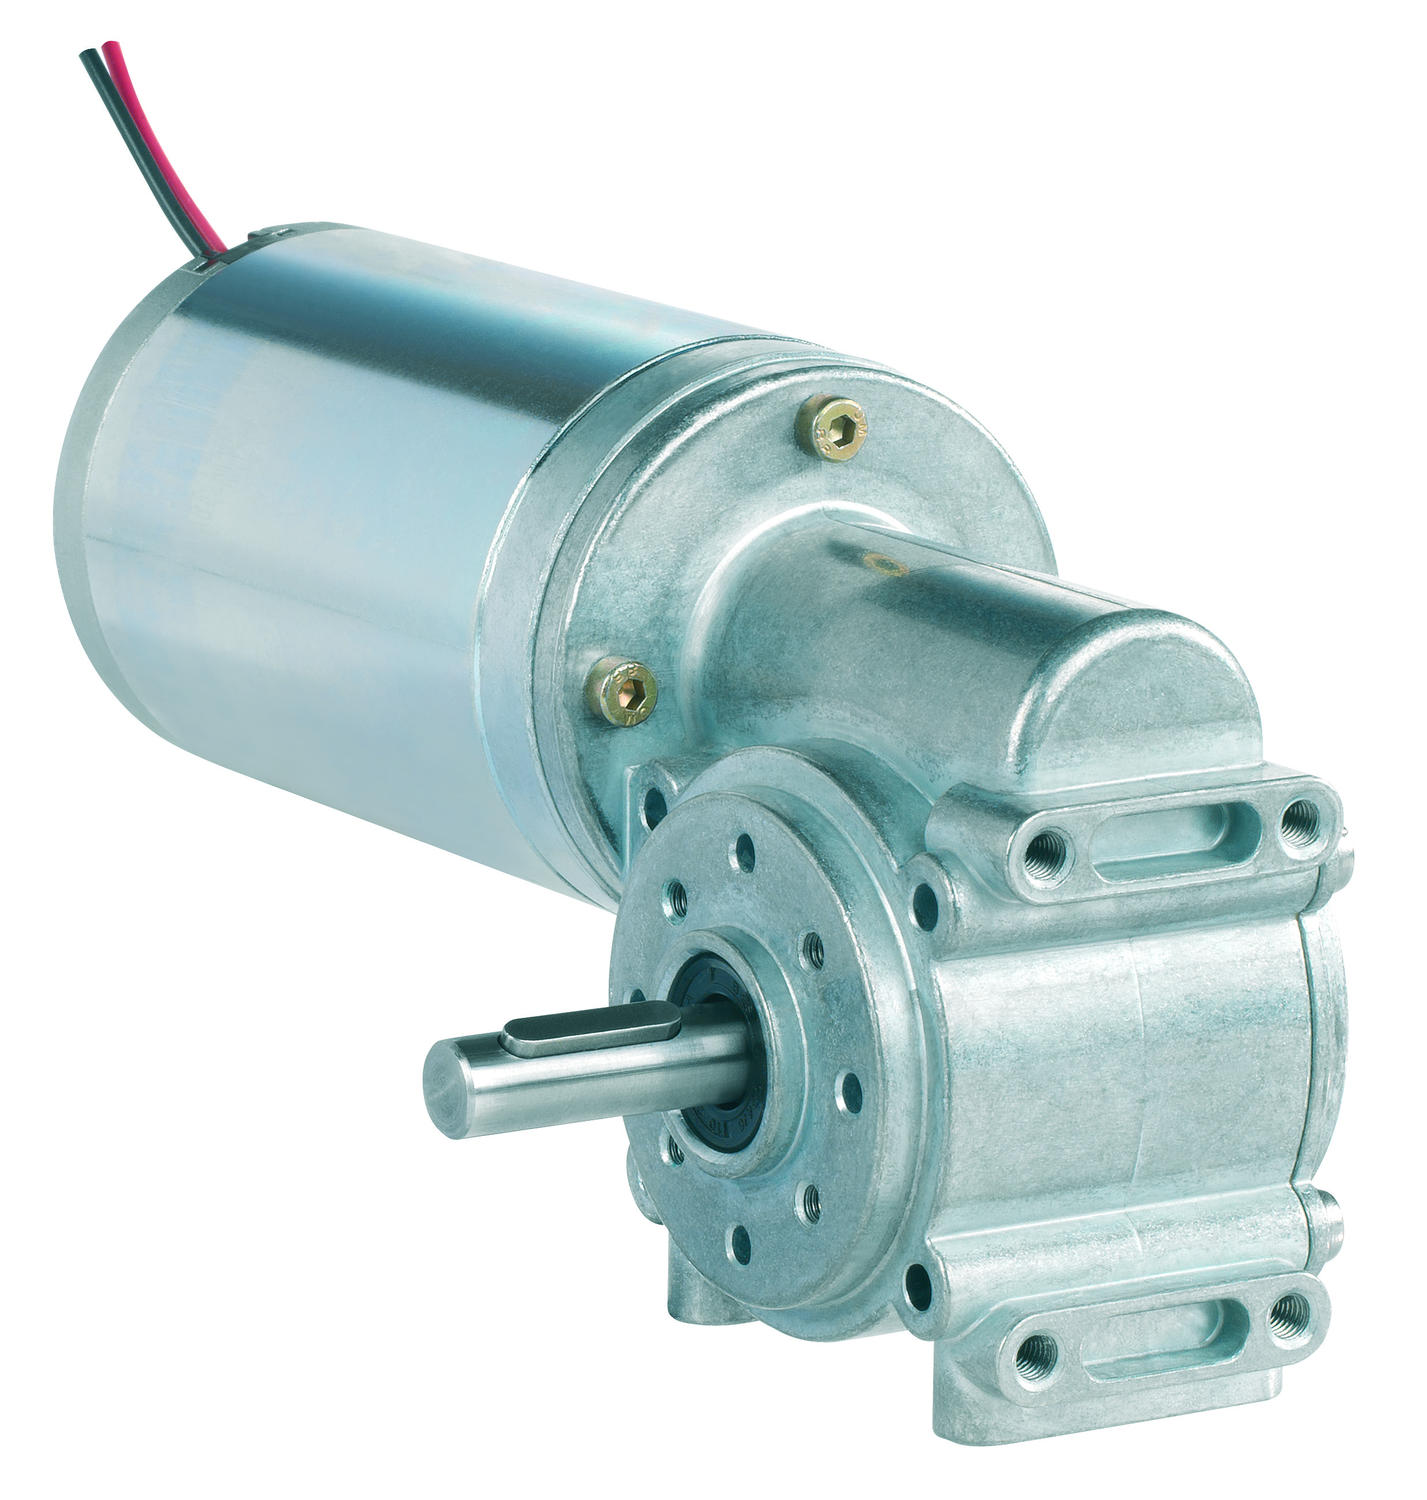 80831xxx DC motor with worm gearbox - Industrial DC Series